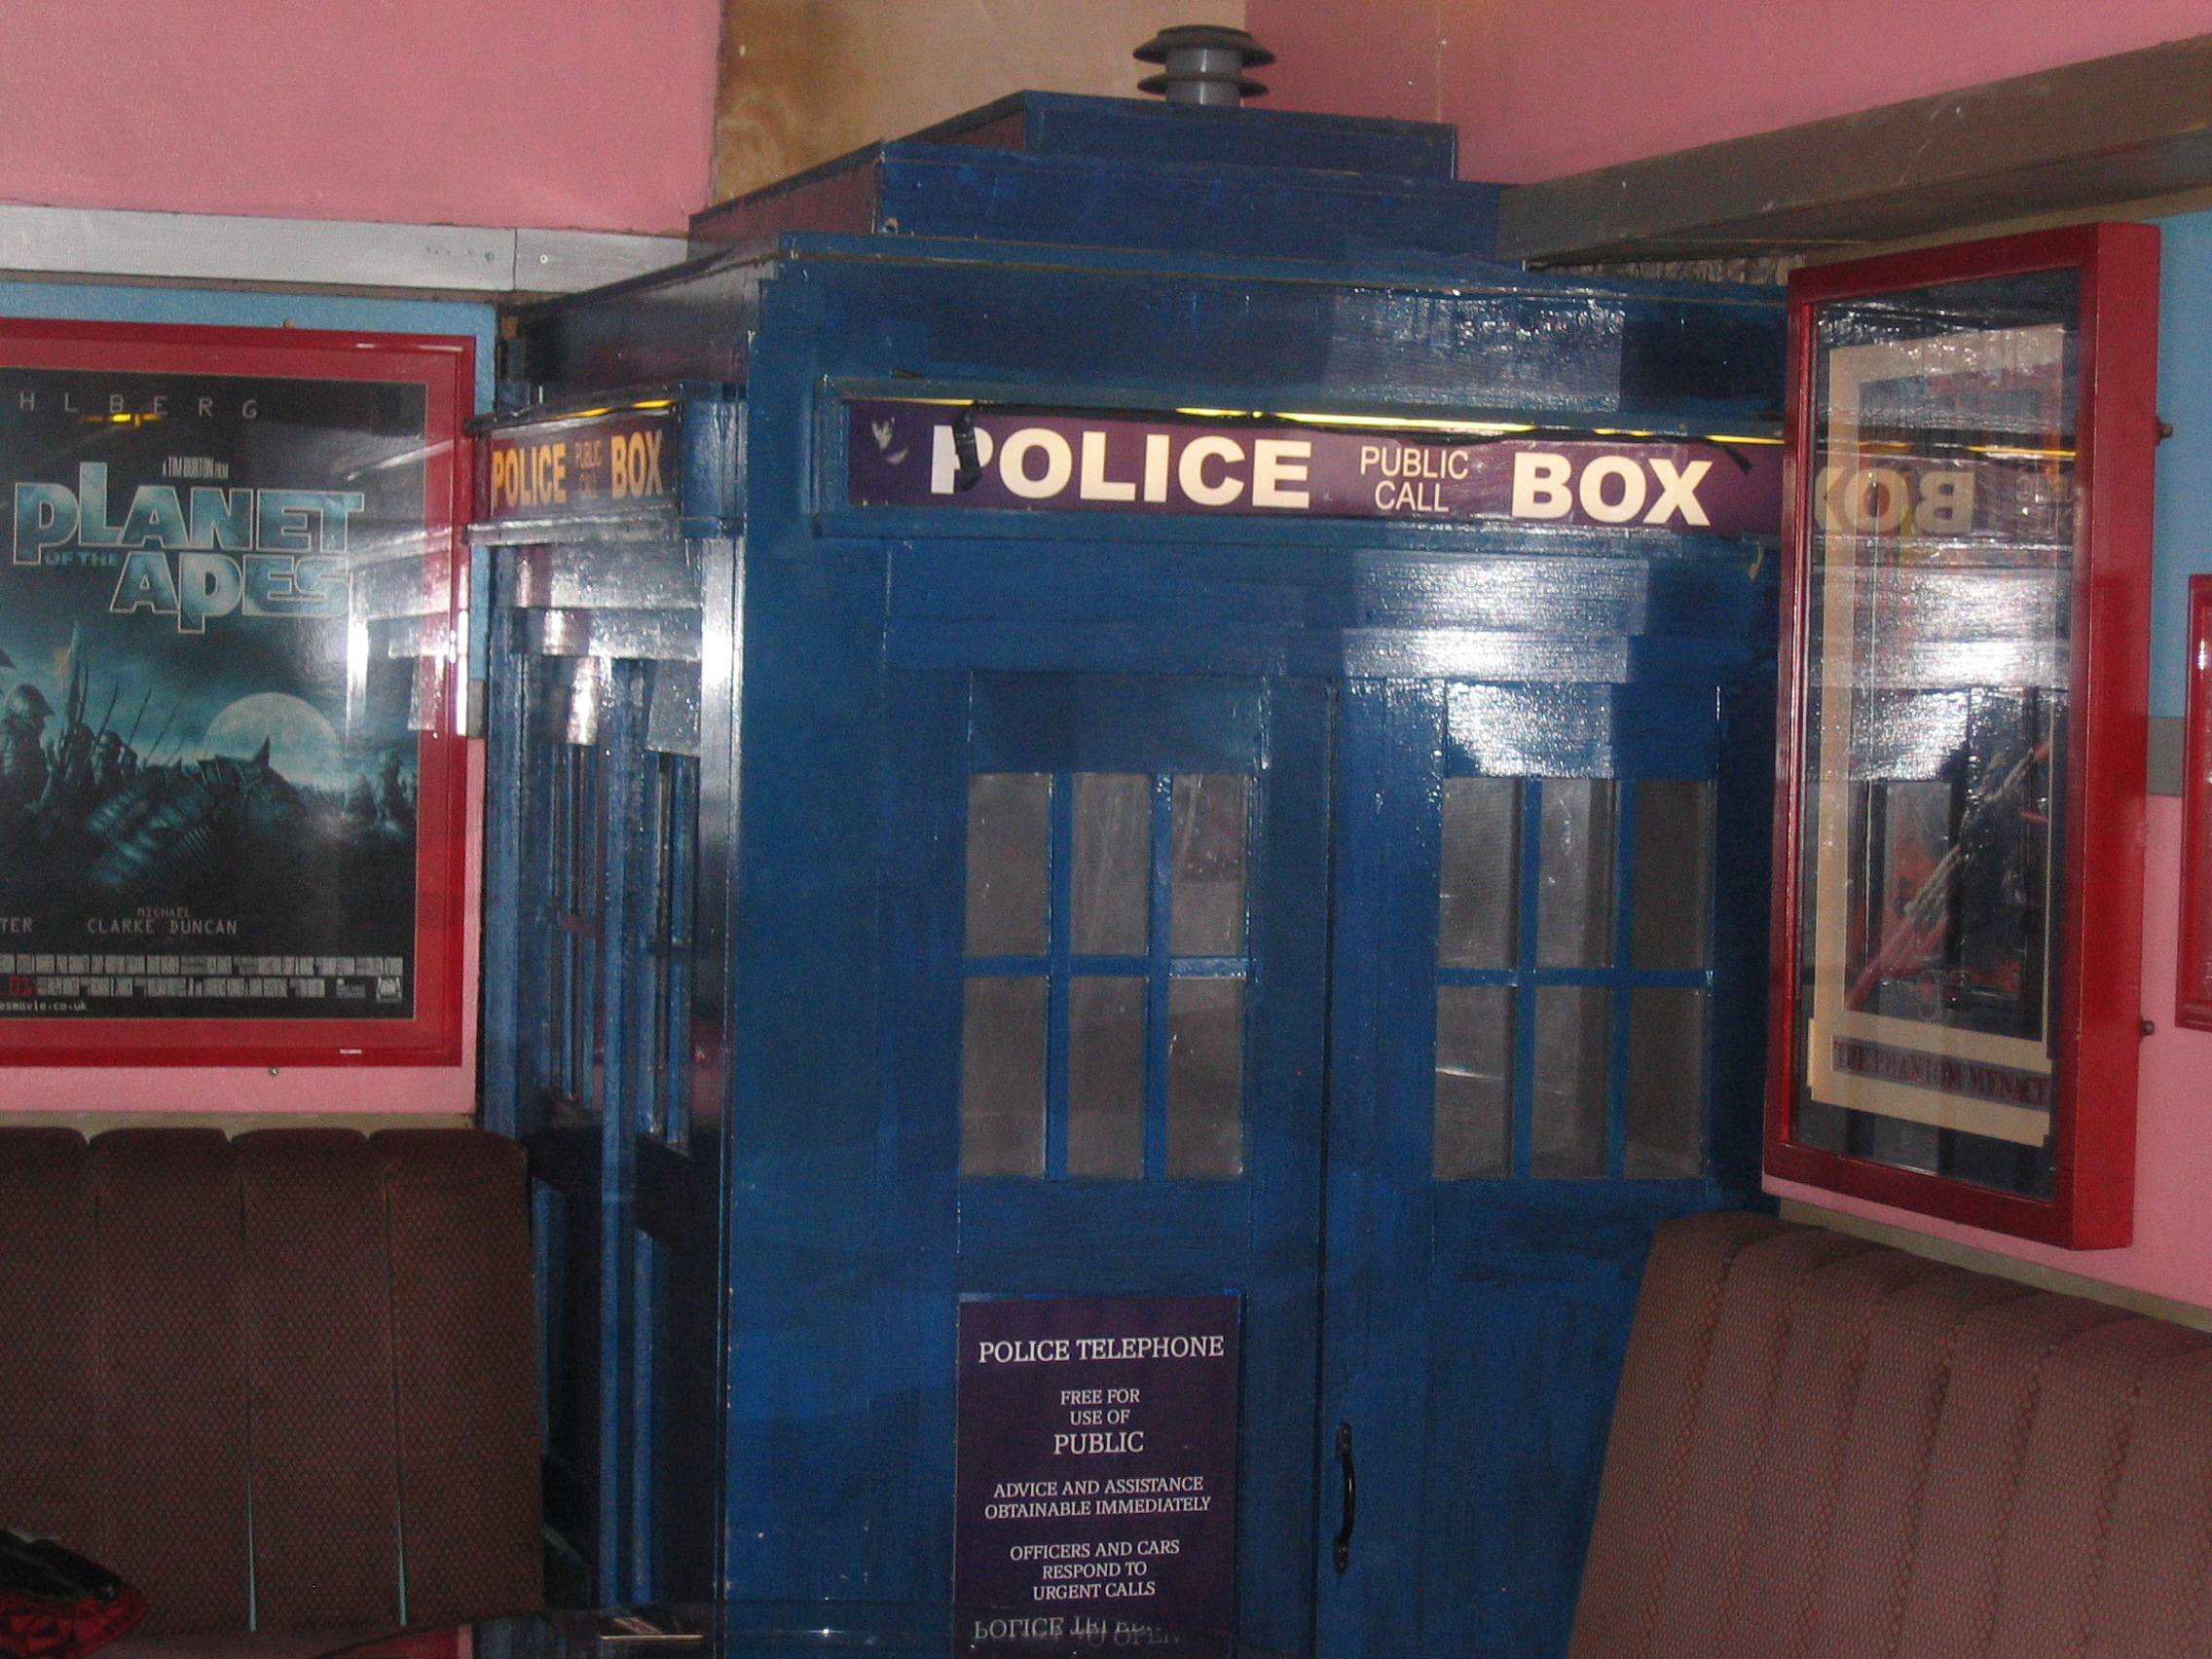 Photo taken by me – The Dr Who TARDIS in FAB Café Manchester